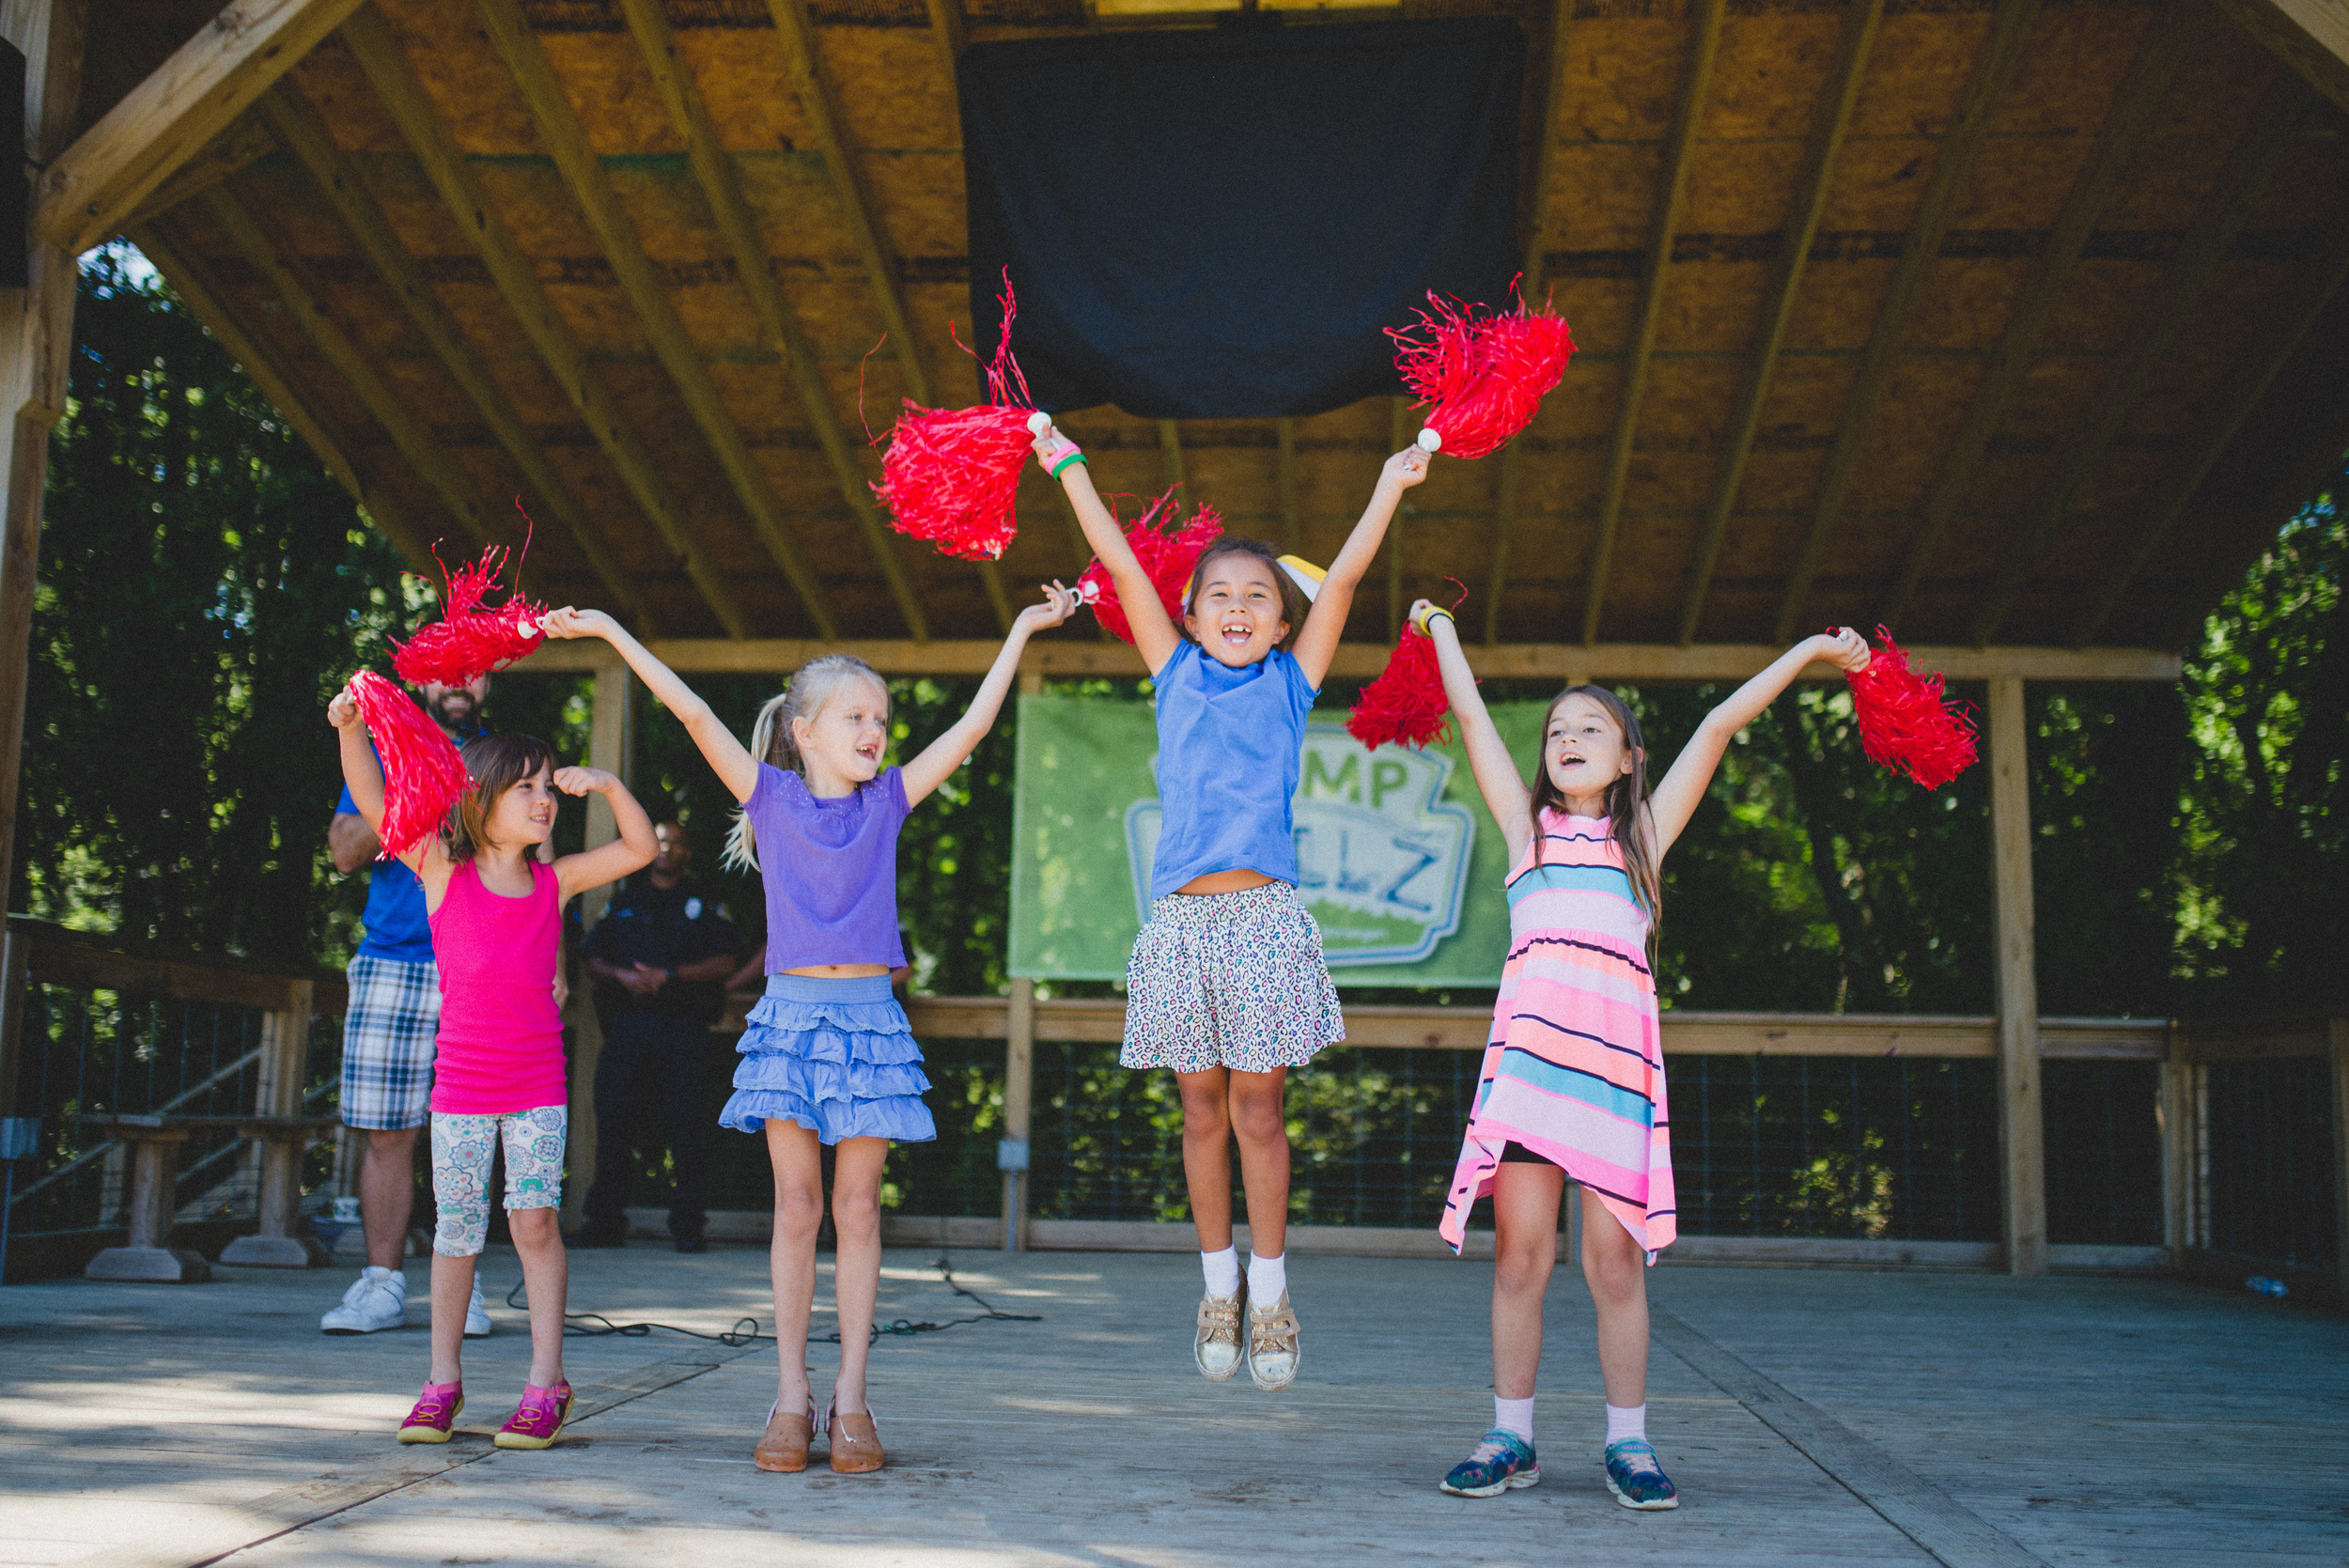 You can't see it, but these girls just performed their own cheer in front of the entire camp. The best part is that the girls are 8-9 years old! Camp Skillz encourages campers to perform live dance and drama because we must all know how to express ourselves before our peers without crumbling in fear of judgment.